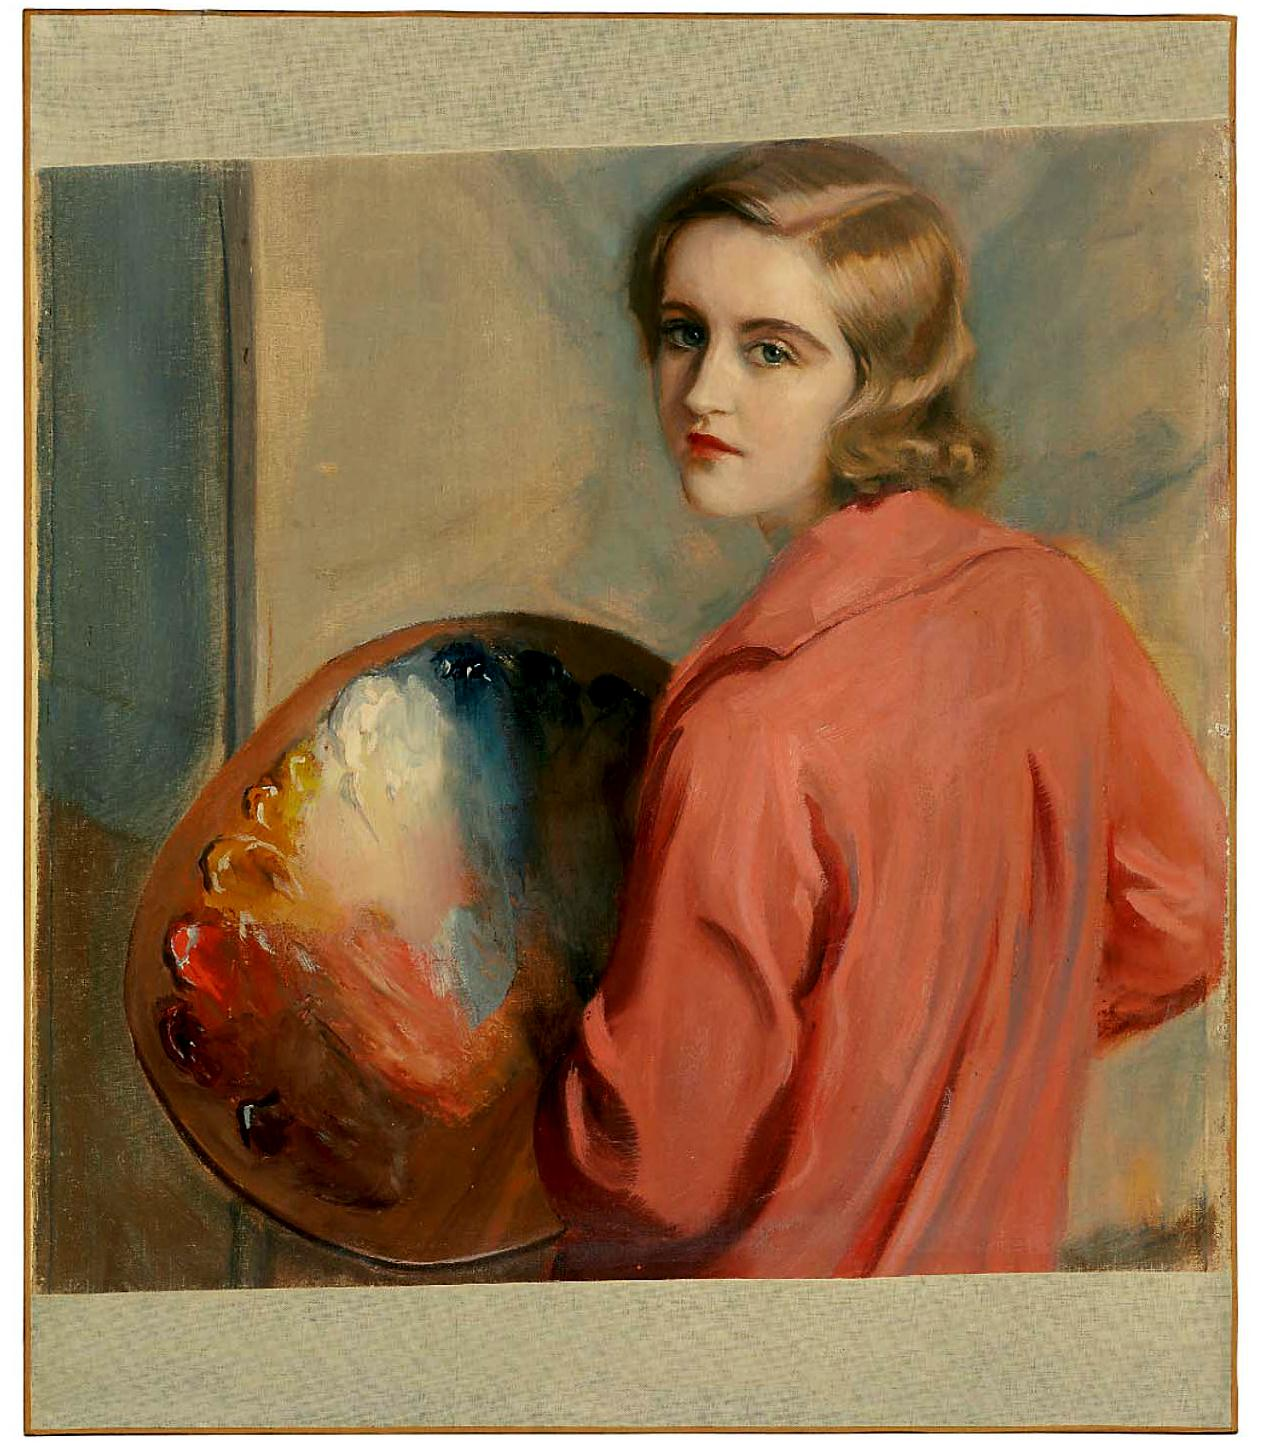 Image: A self-portrait of Huguette Clark